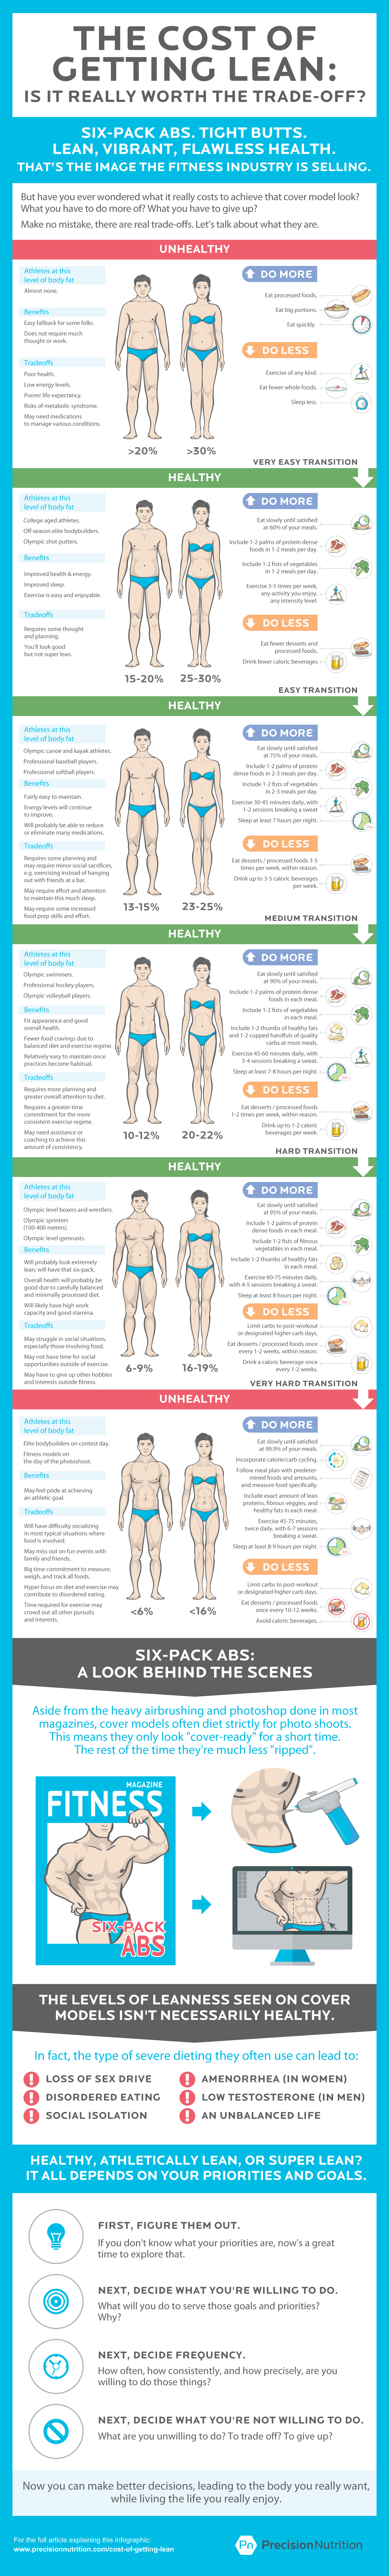 Can you pay the price for getting lean? this infographic shows you how